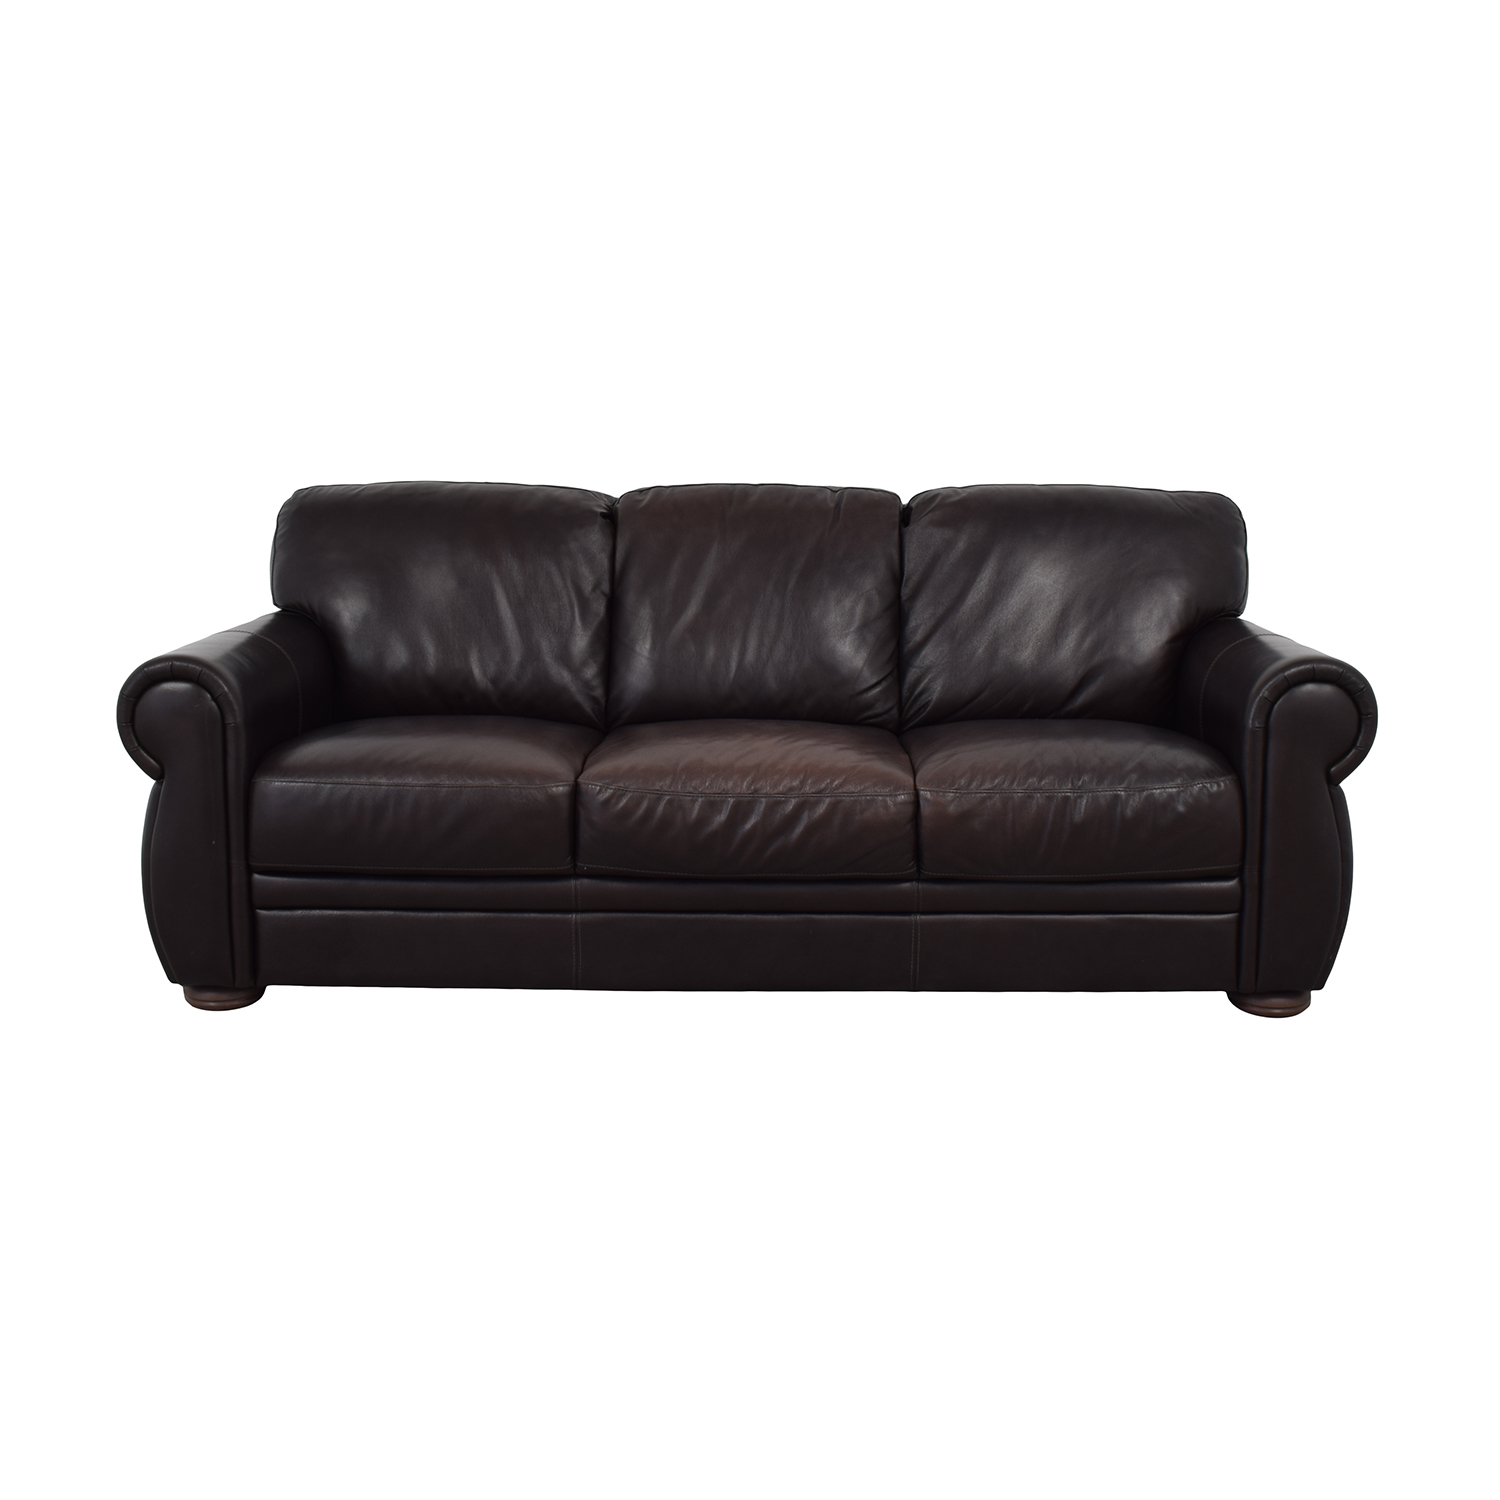 Raymour & Flanigan Raymour & Flanigan Marsala Leather Sofa dimensions